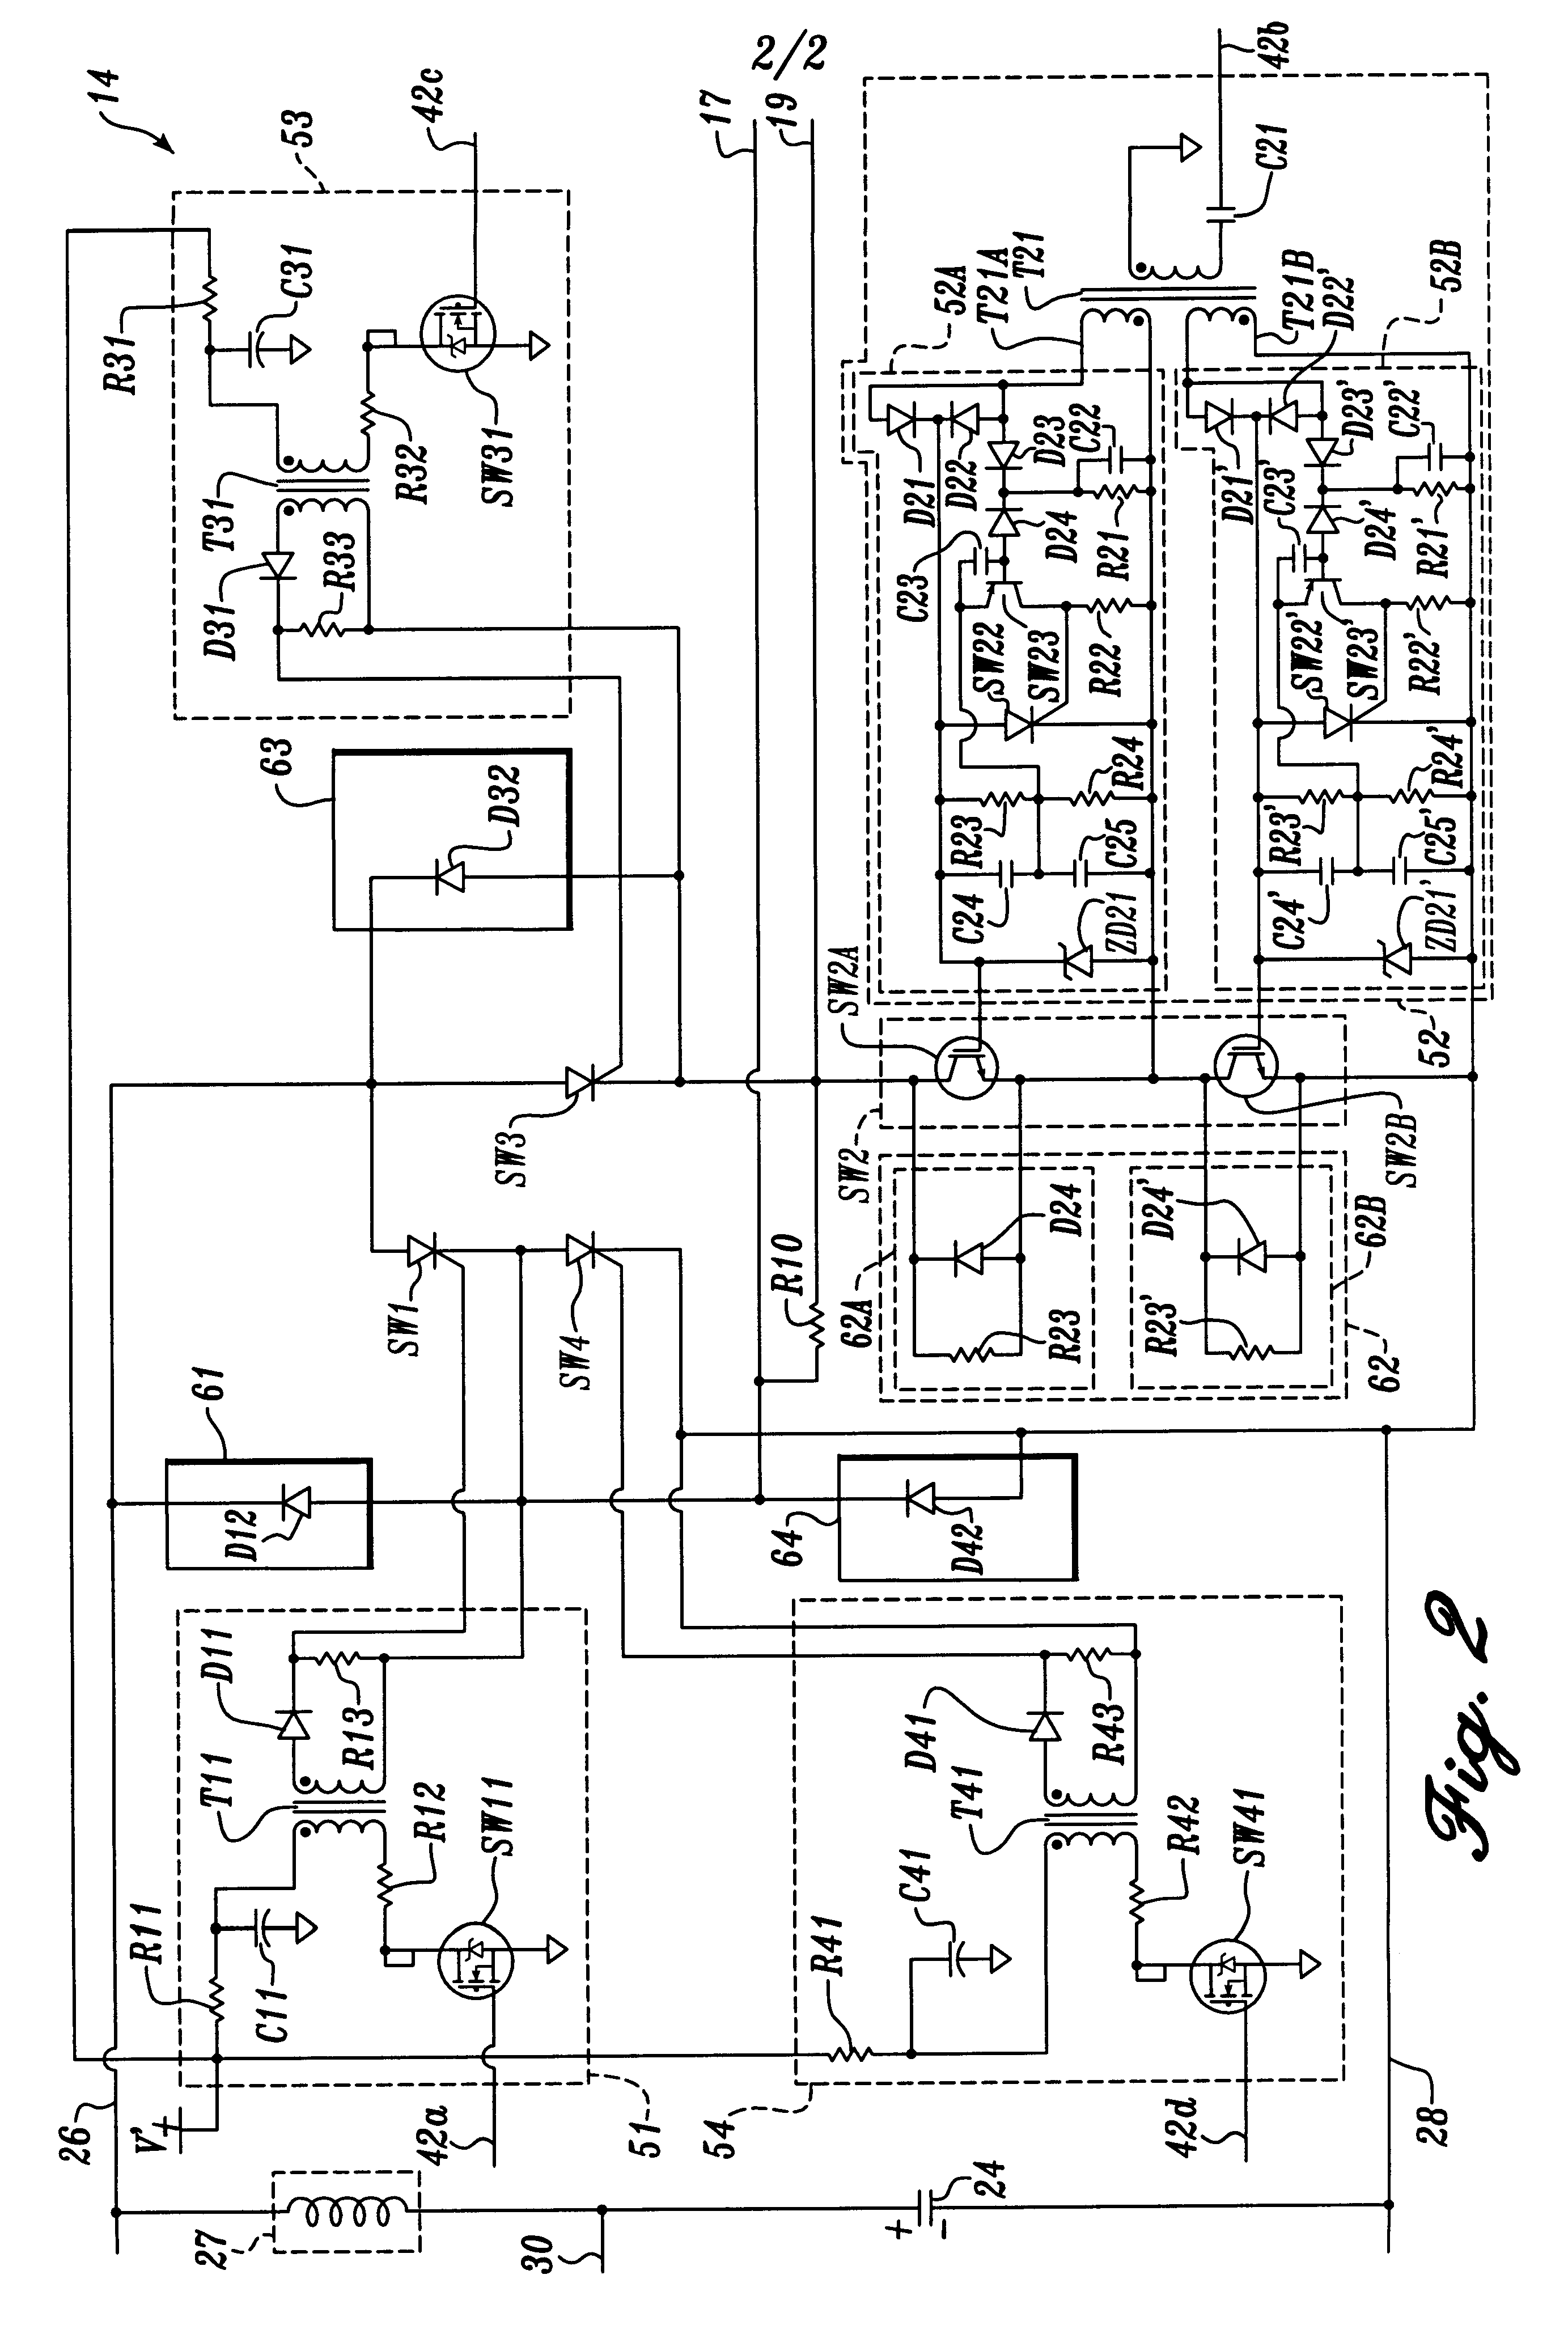 Patent Us6175765 H Bridge Circuit For Generating A High Energy Rc Charging Stored And Dissipated Waveforms Drawing